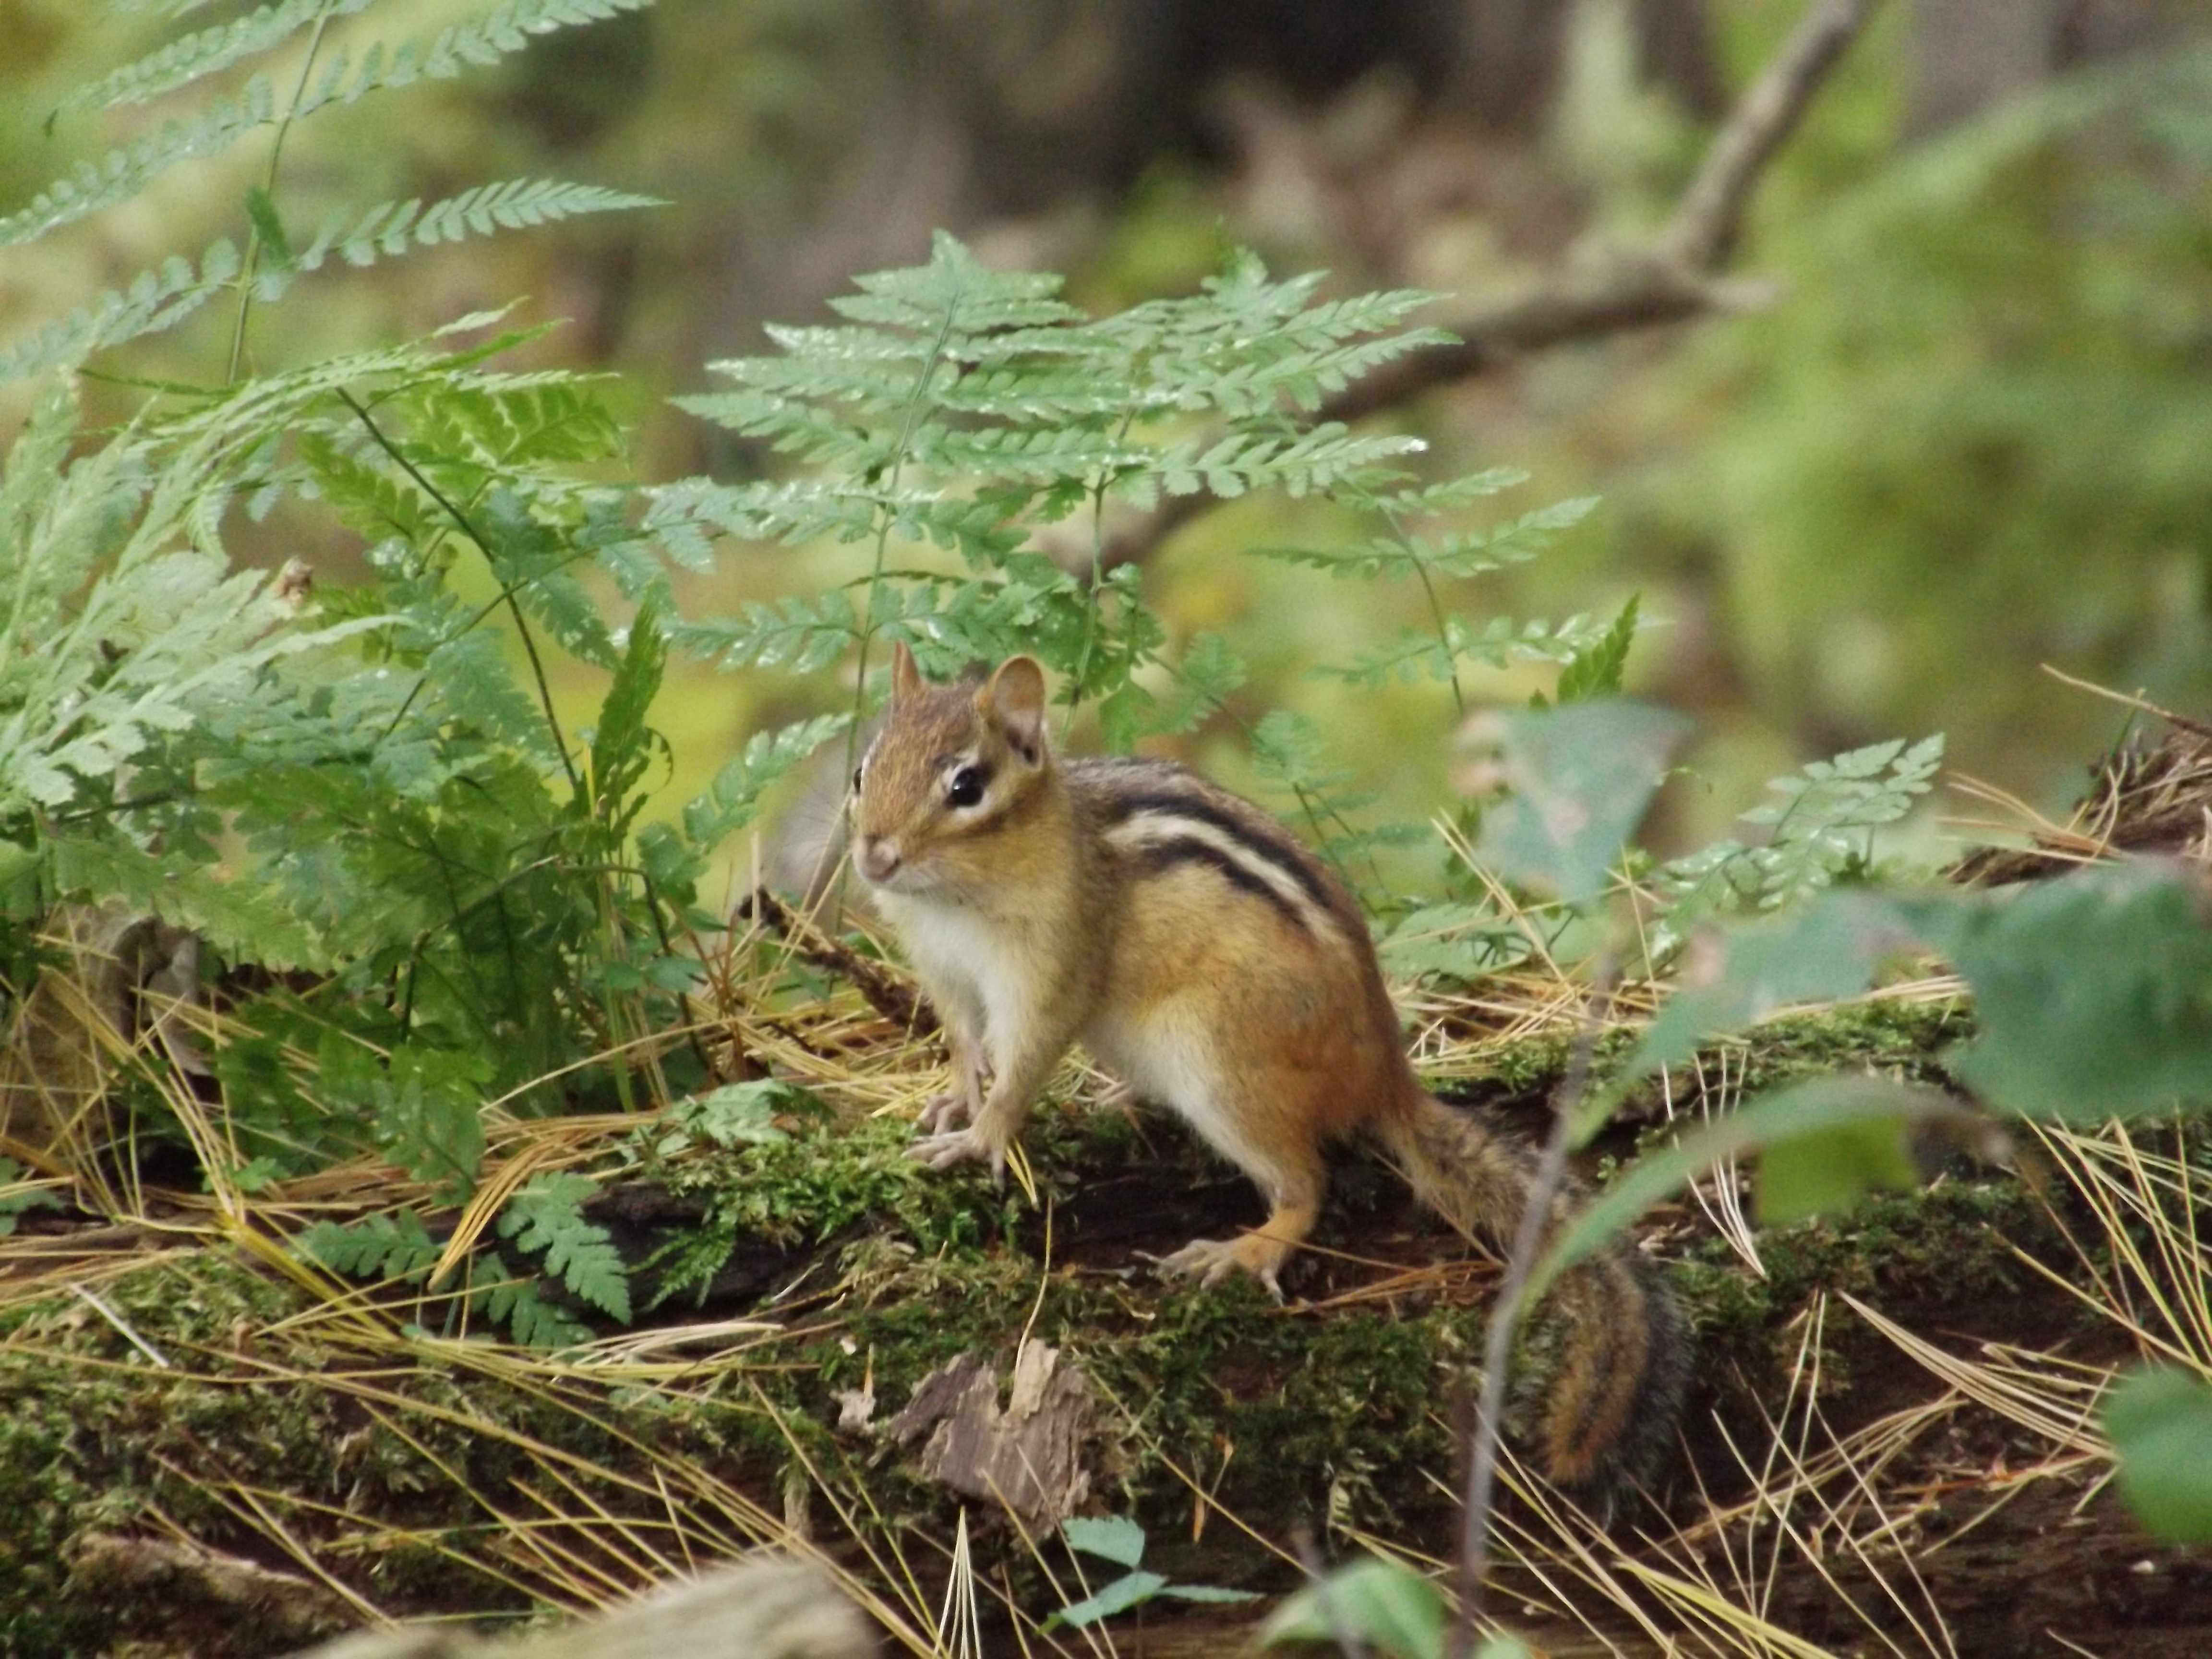 A chipmunk pauses on a fallen log. Photo: Erica Dailey, natureupnorth.org